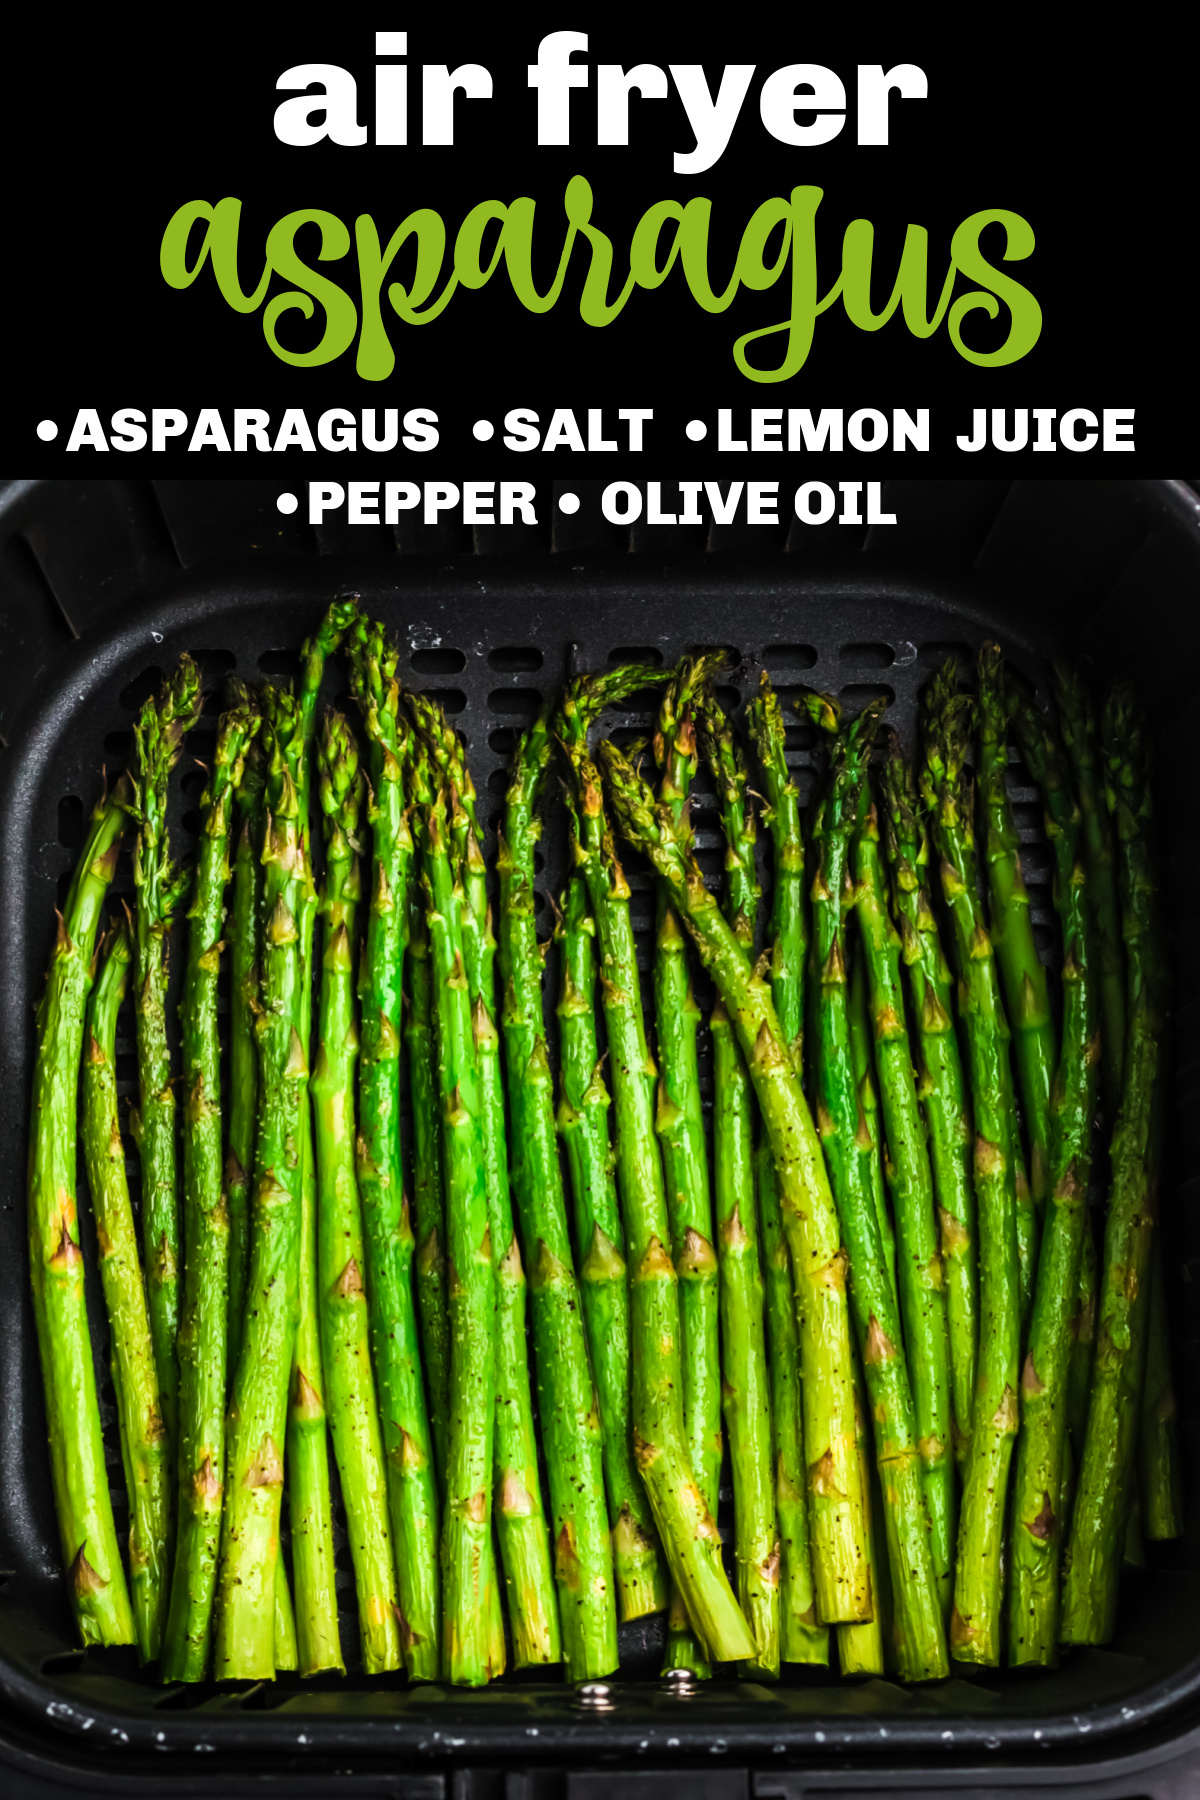 Asparagus in the basket of the air fryer. Image with text.